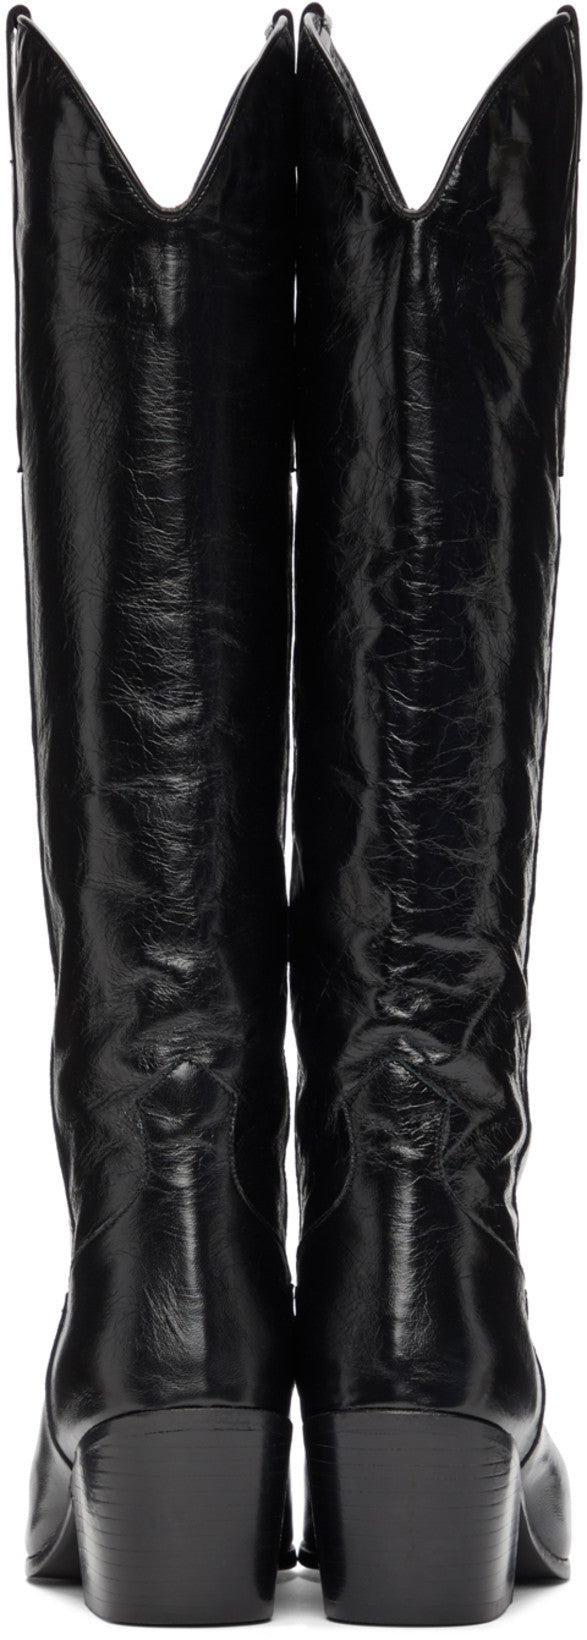 'Willa' Creased Leather Boot